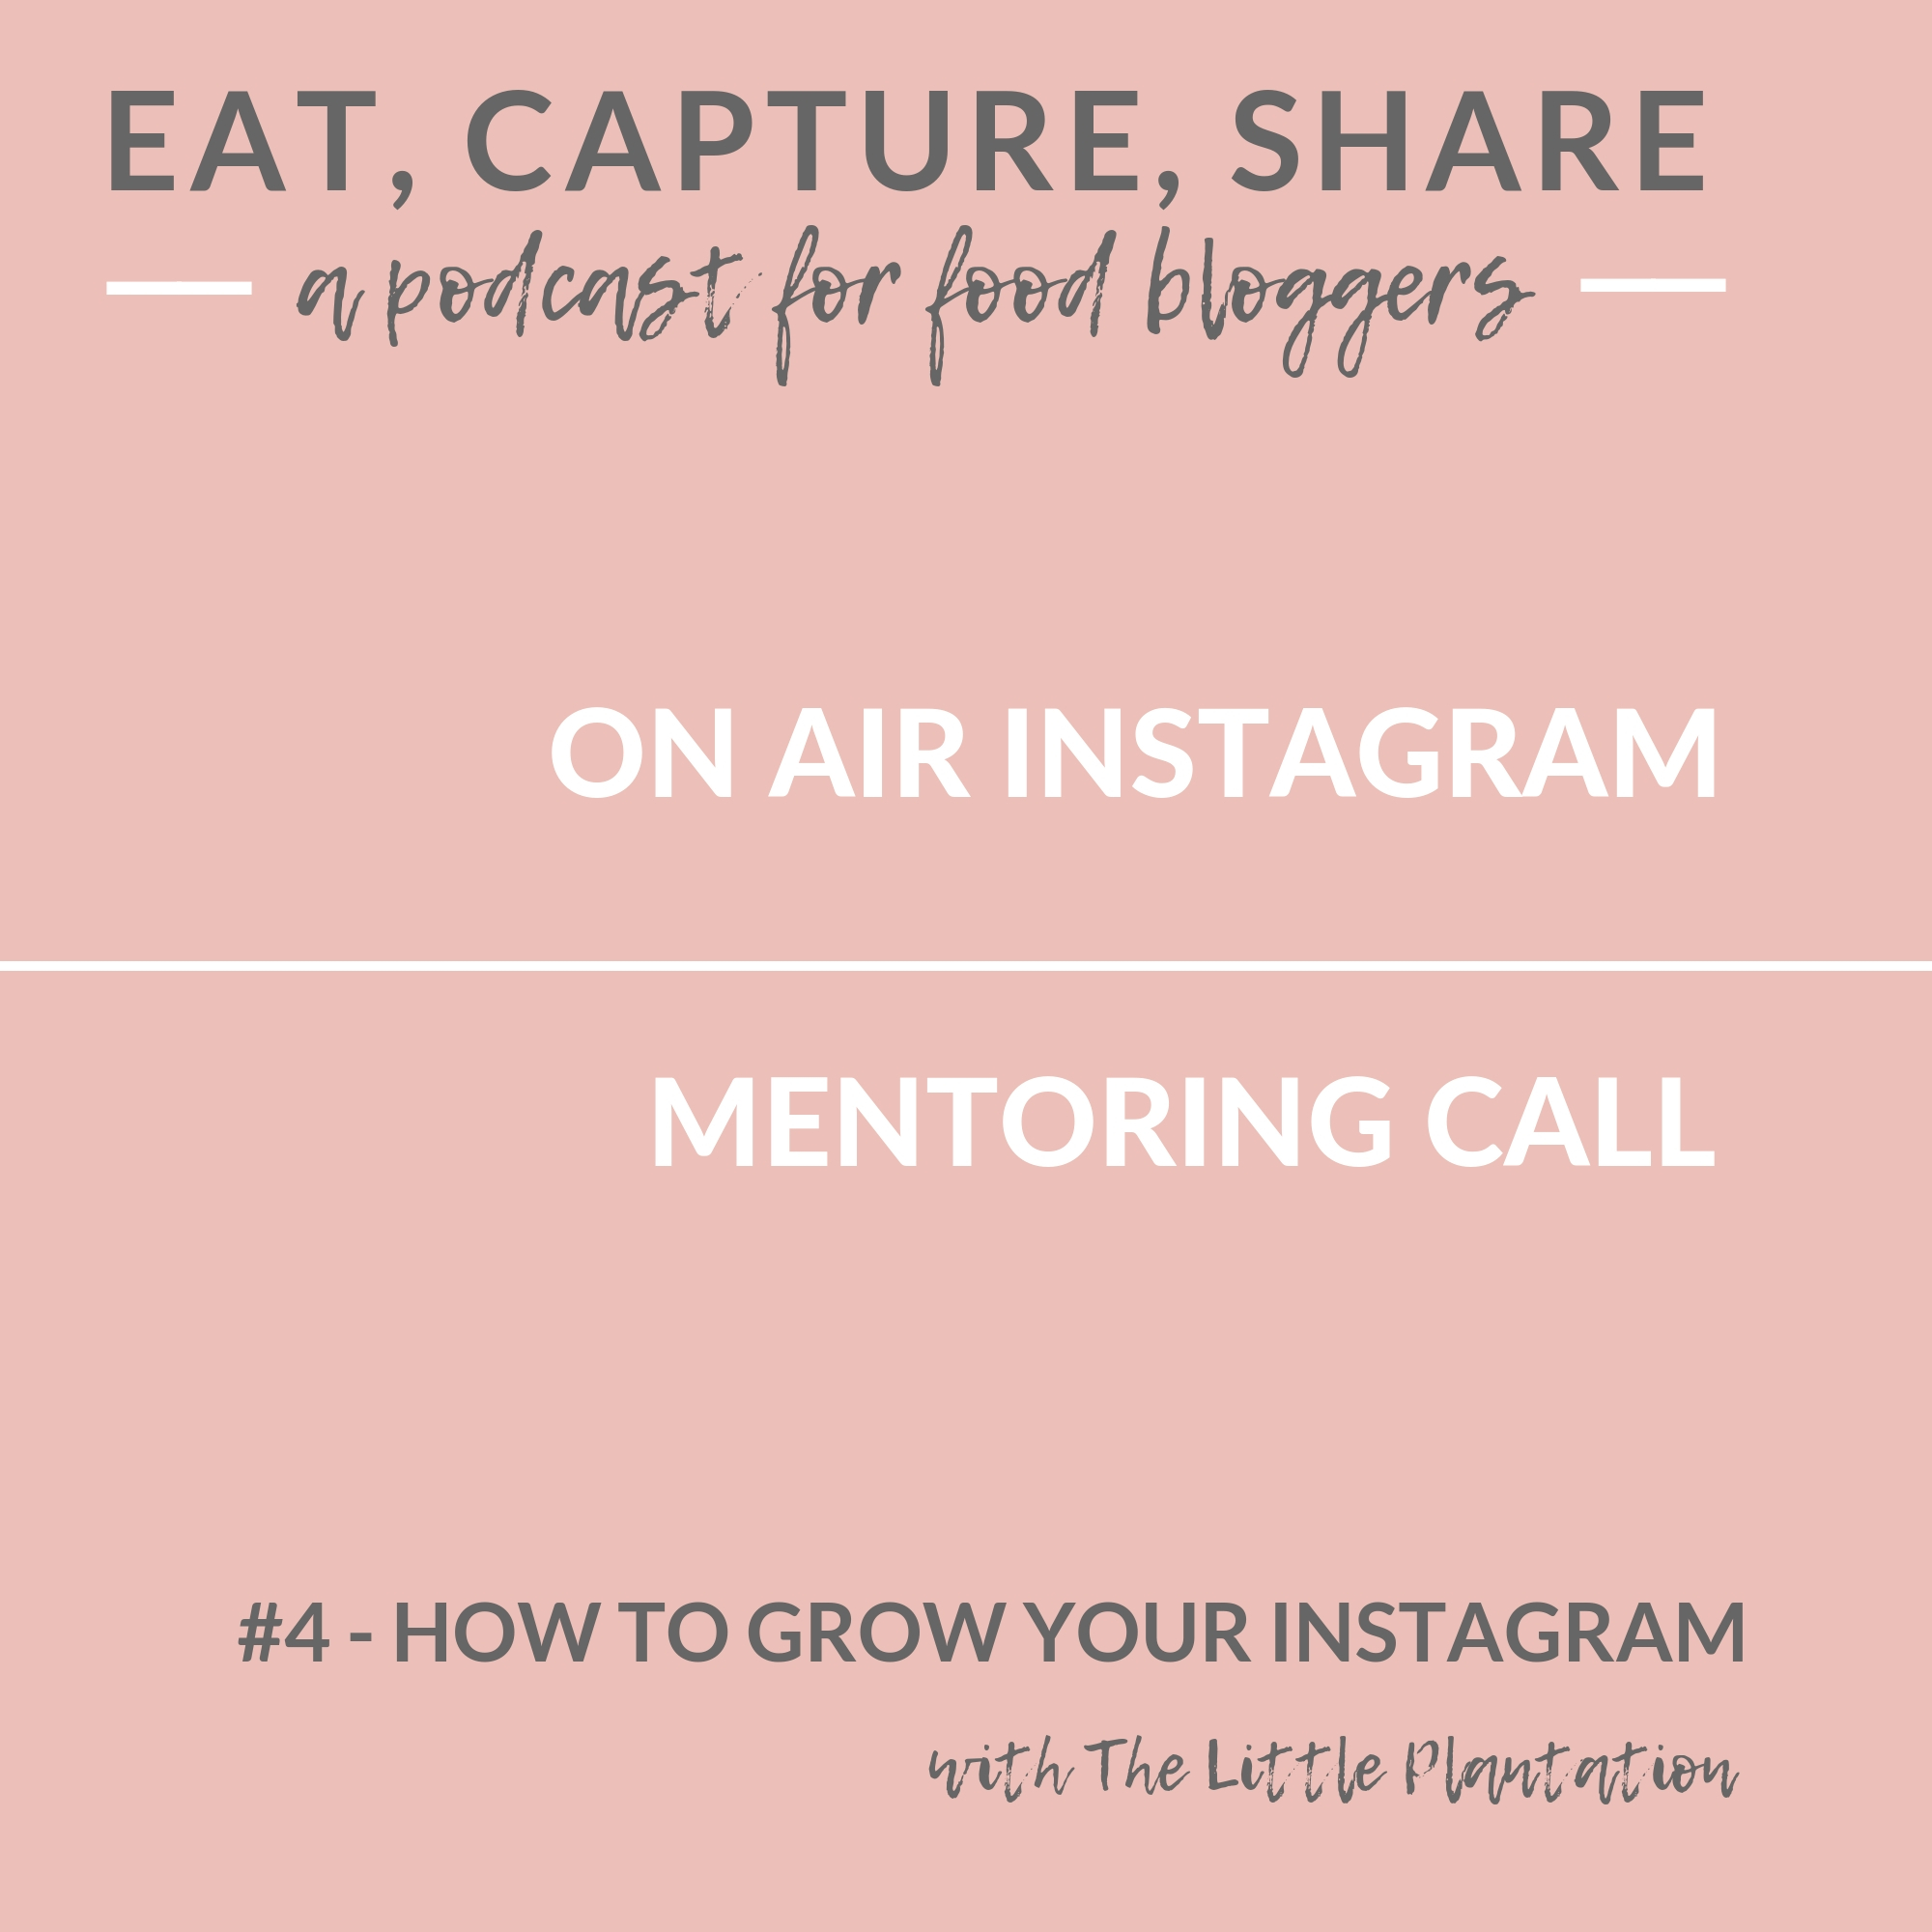 How to grow your instagram - Podcast for food bloggers